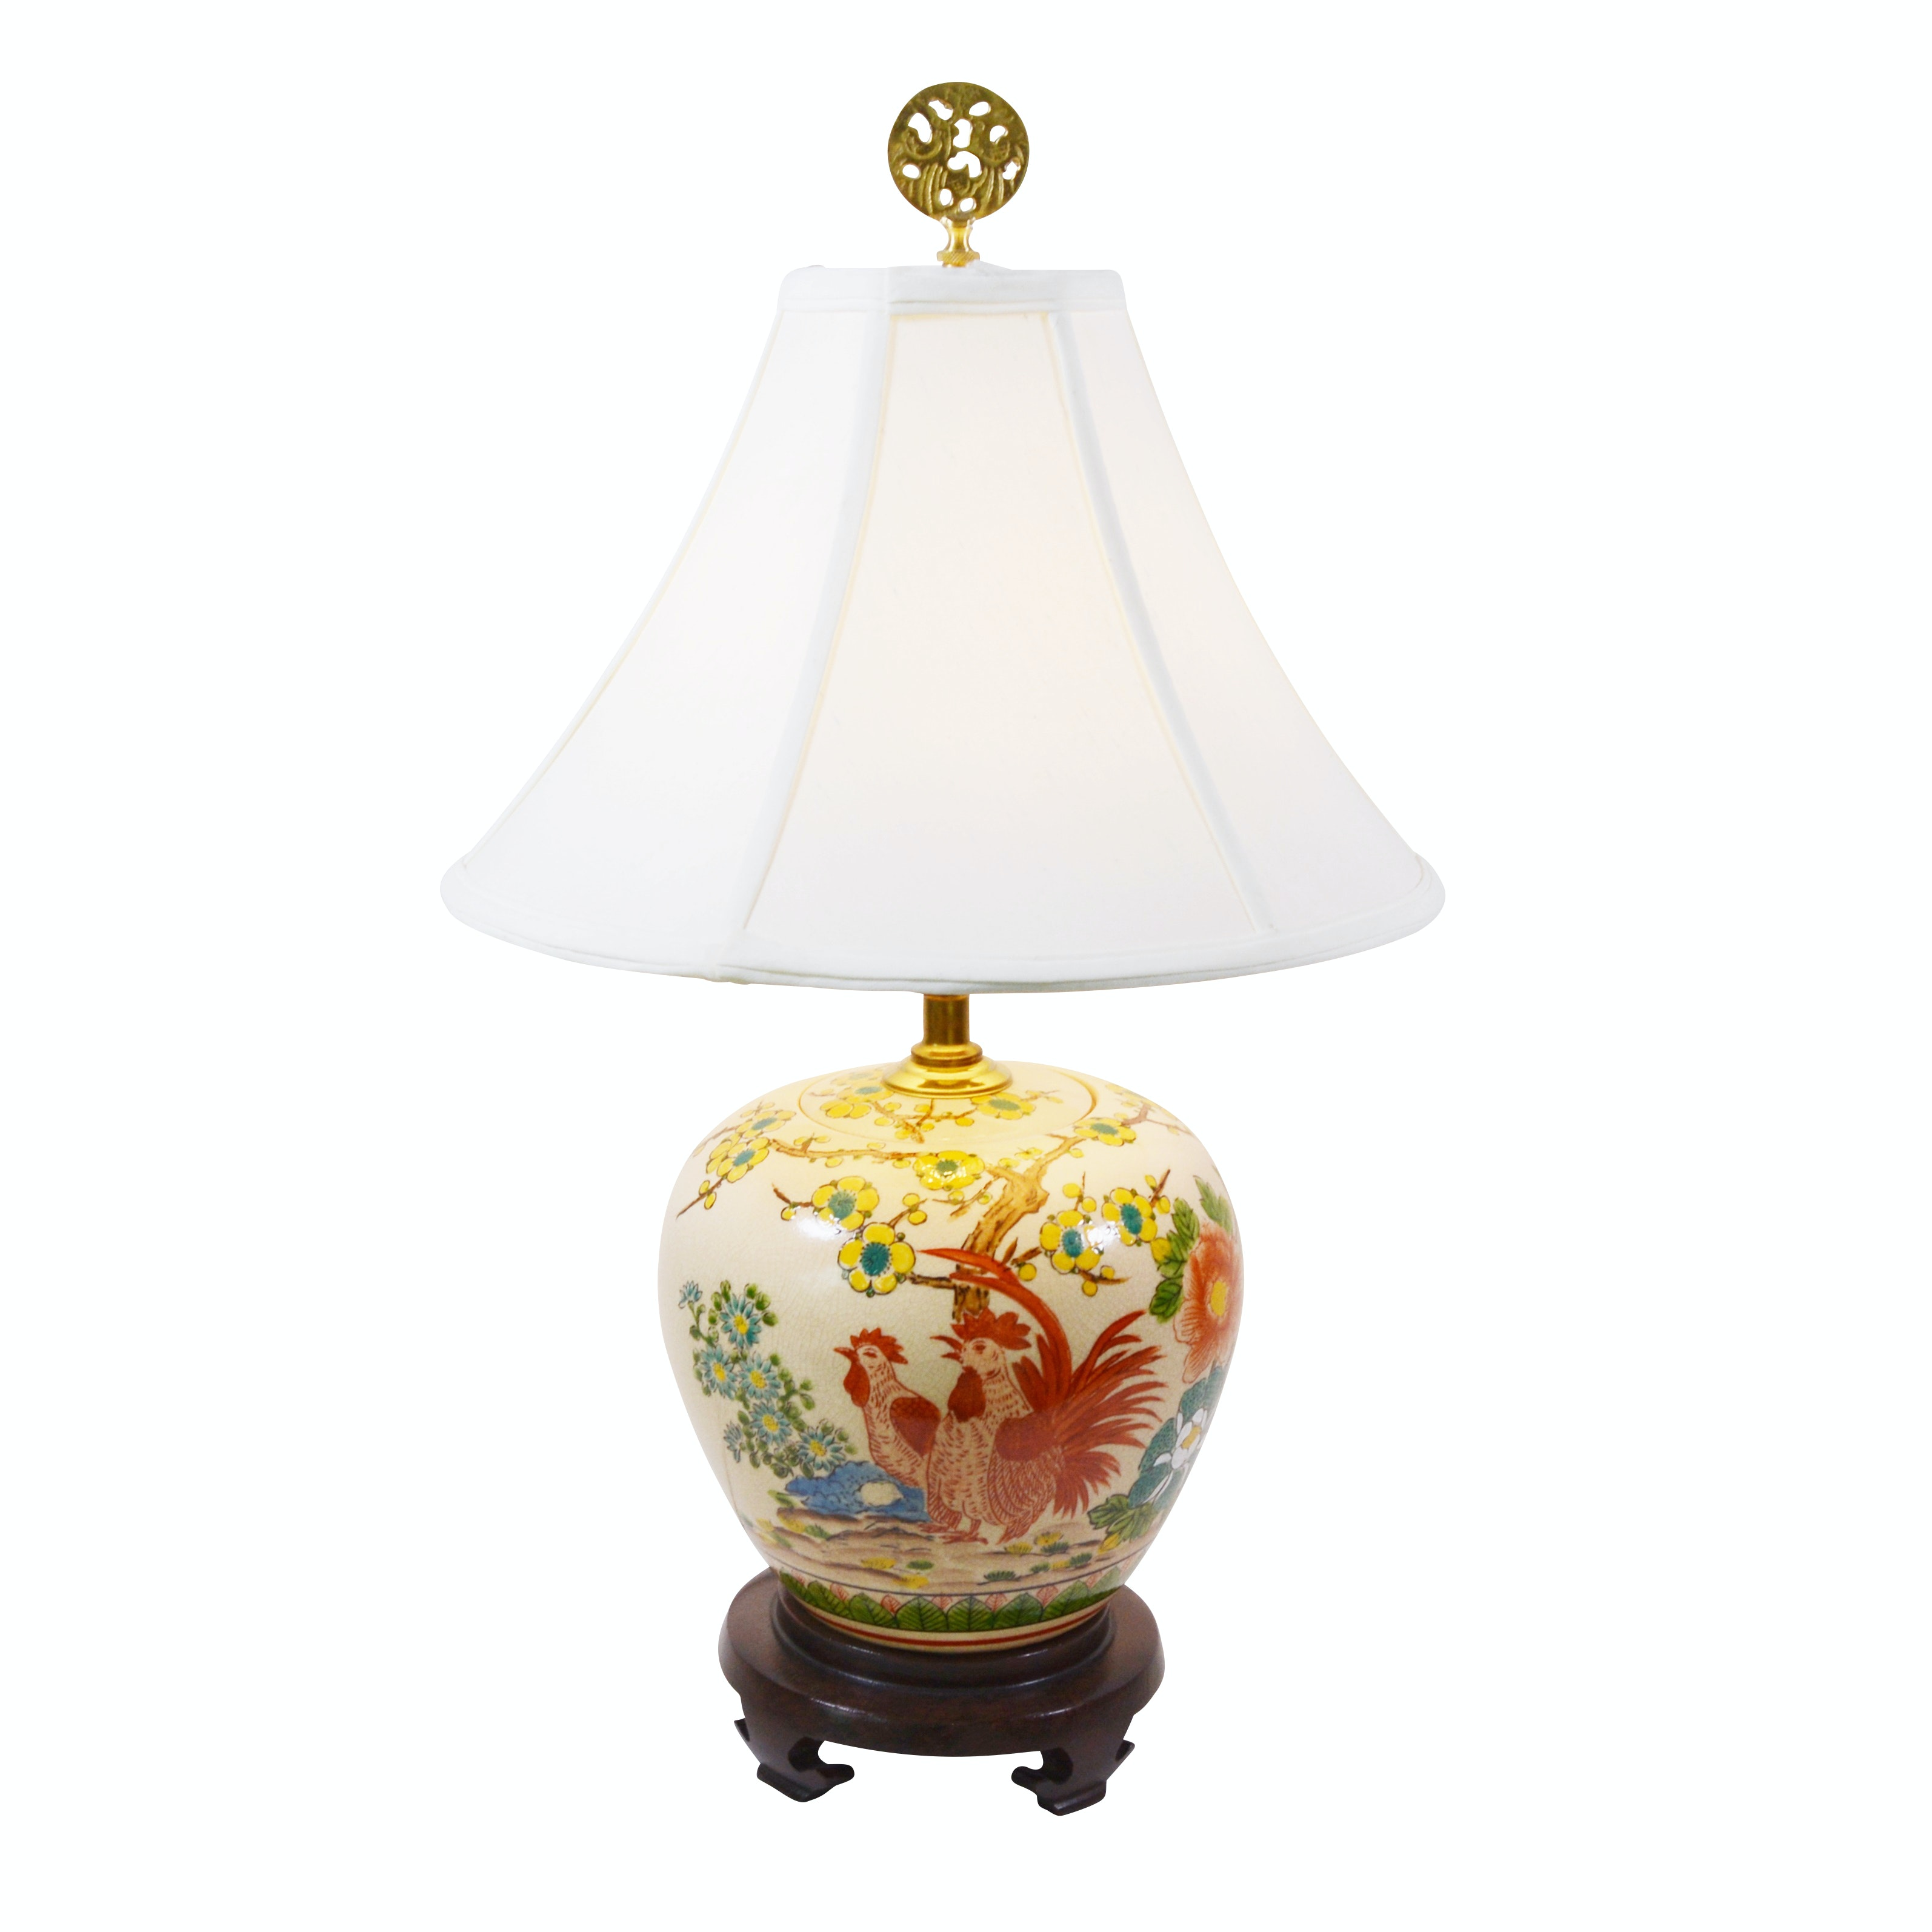 Chinese Rooster Motif Porcelain Melon Jar Table Lamp